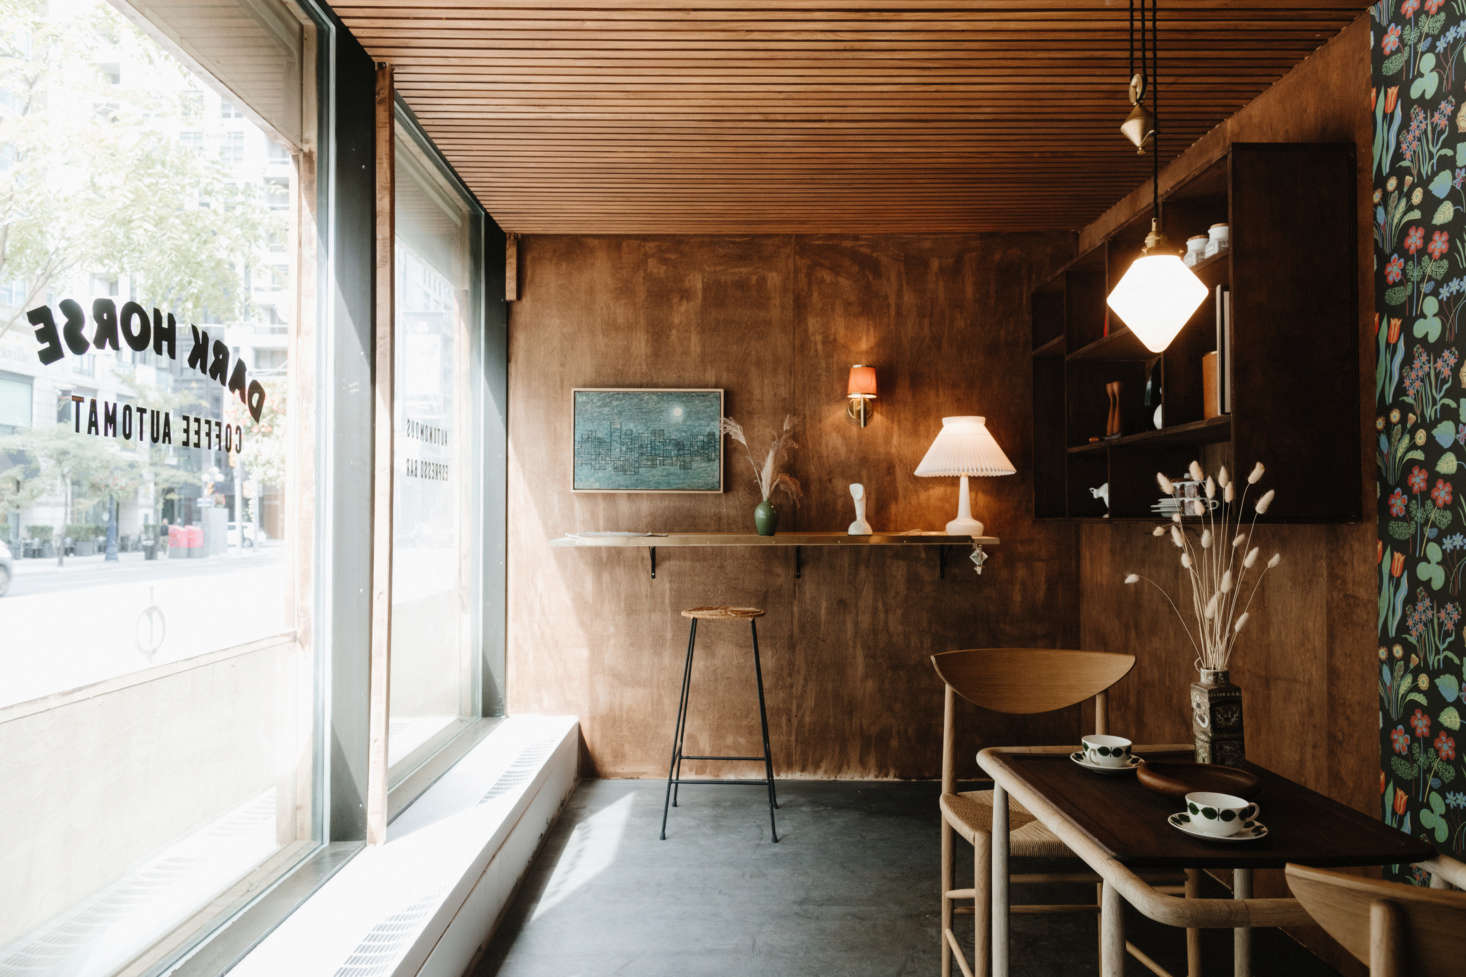 The interior space is clad in birch plywood stained in Special Walnut from Old Masters Wood Stain in Iowa.